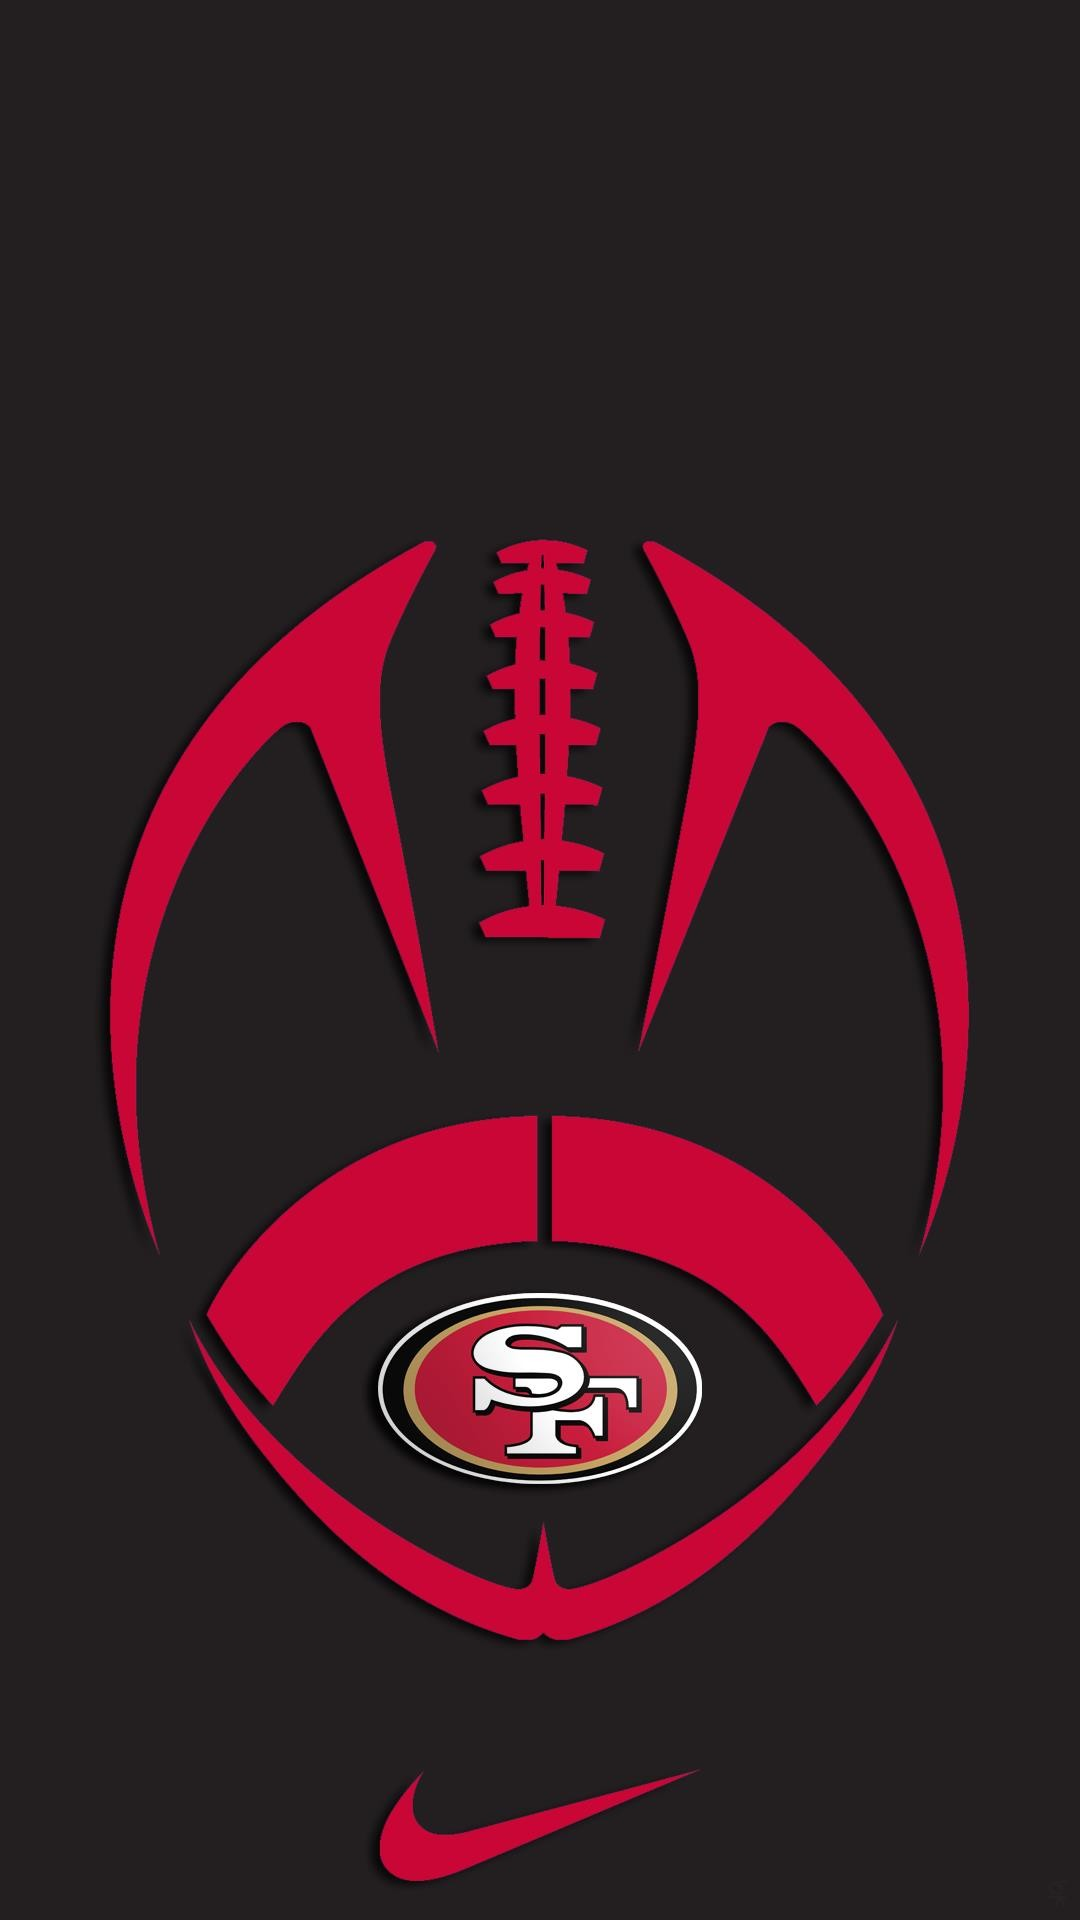 Dallas Cowboys Wallpaper Iphone 6 Plus 49ers Wallpaper For Iphone 6 65 Images